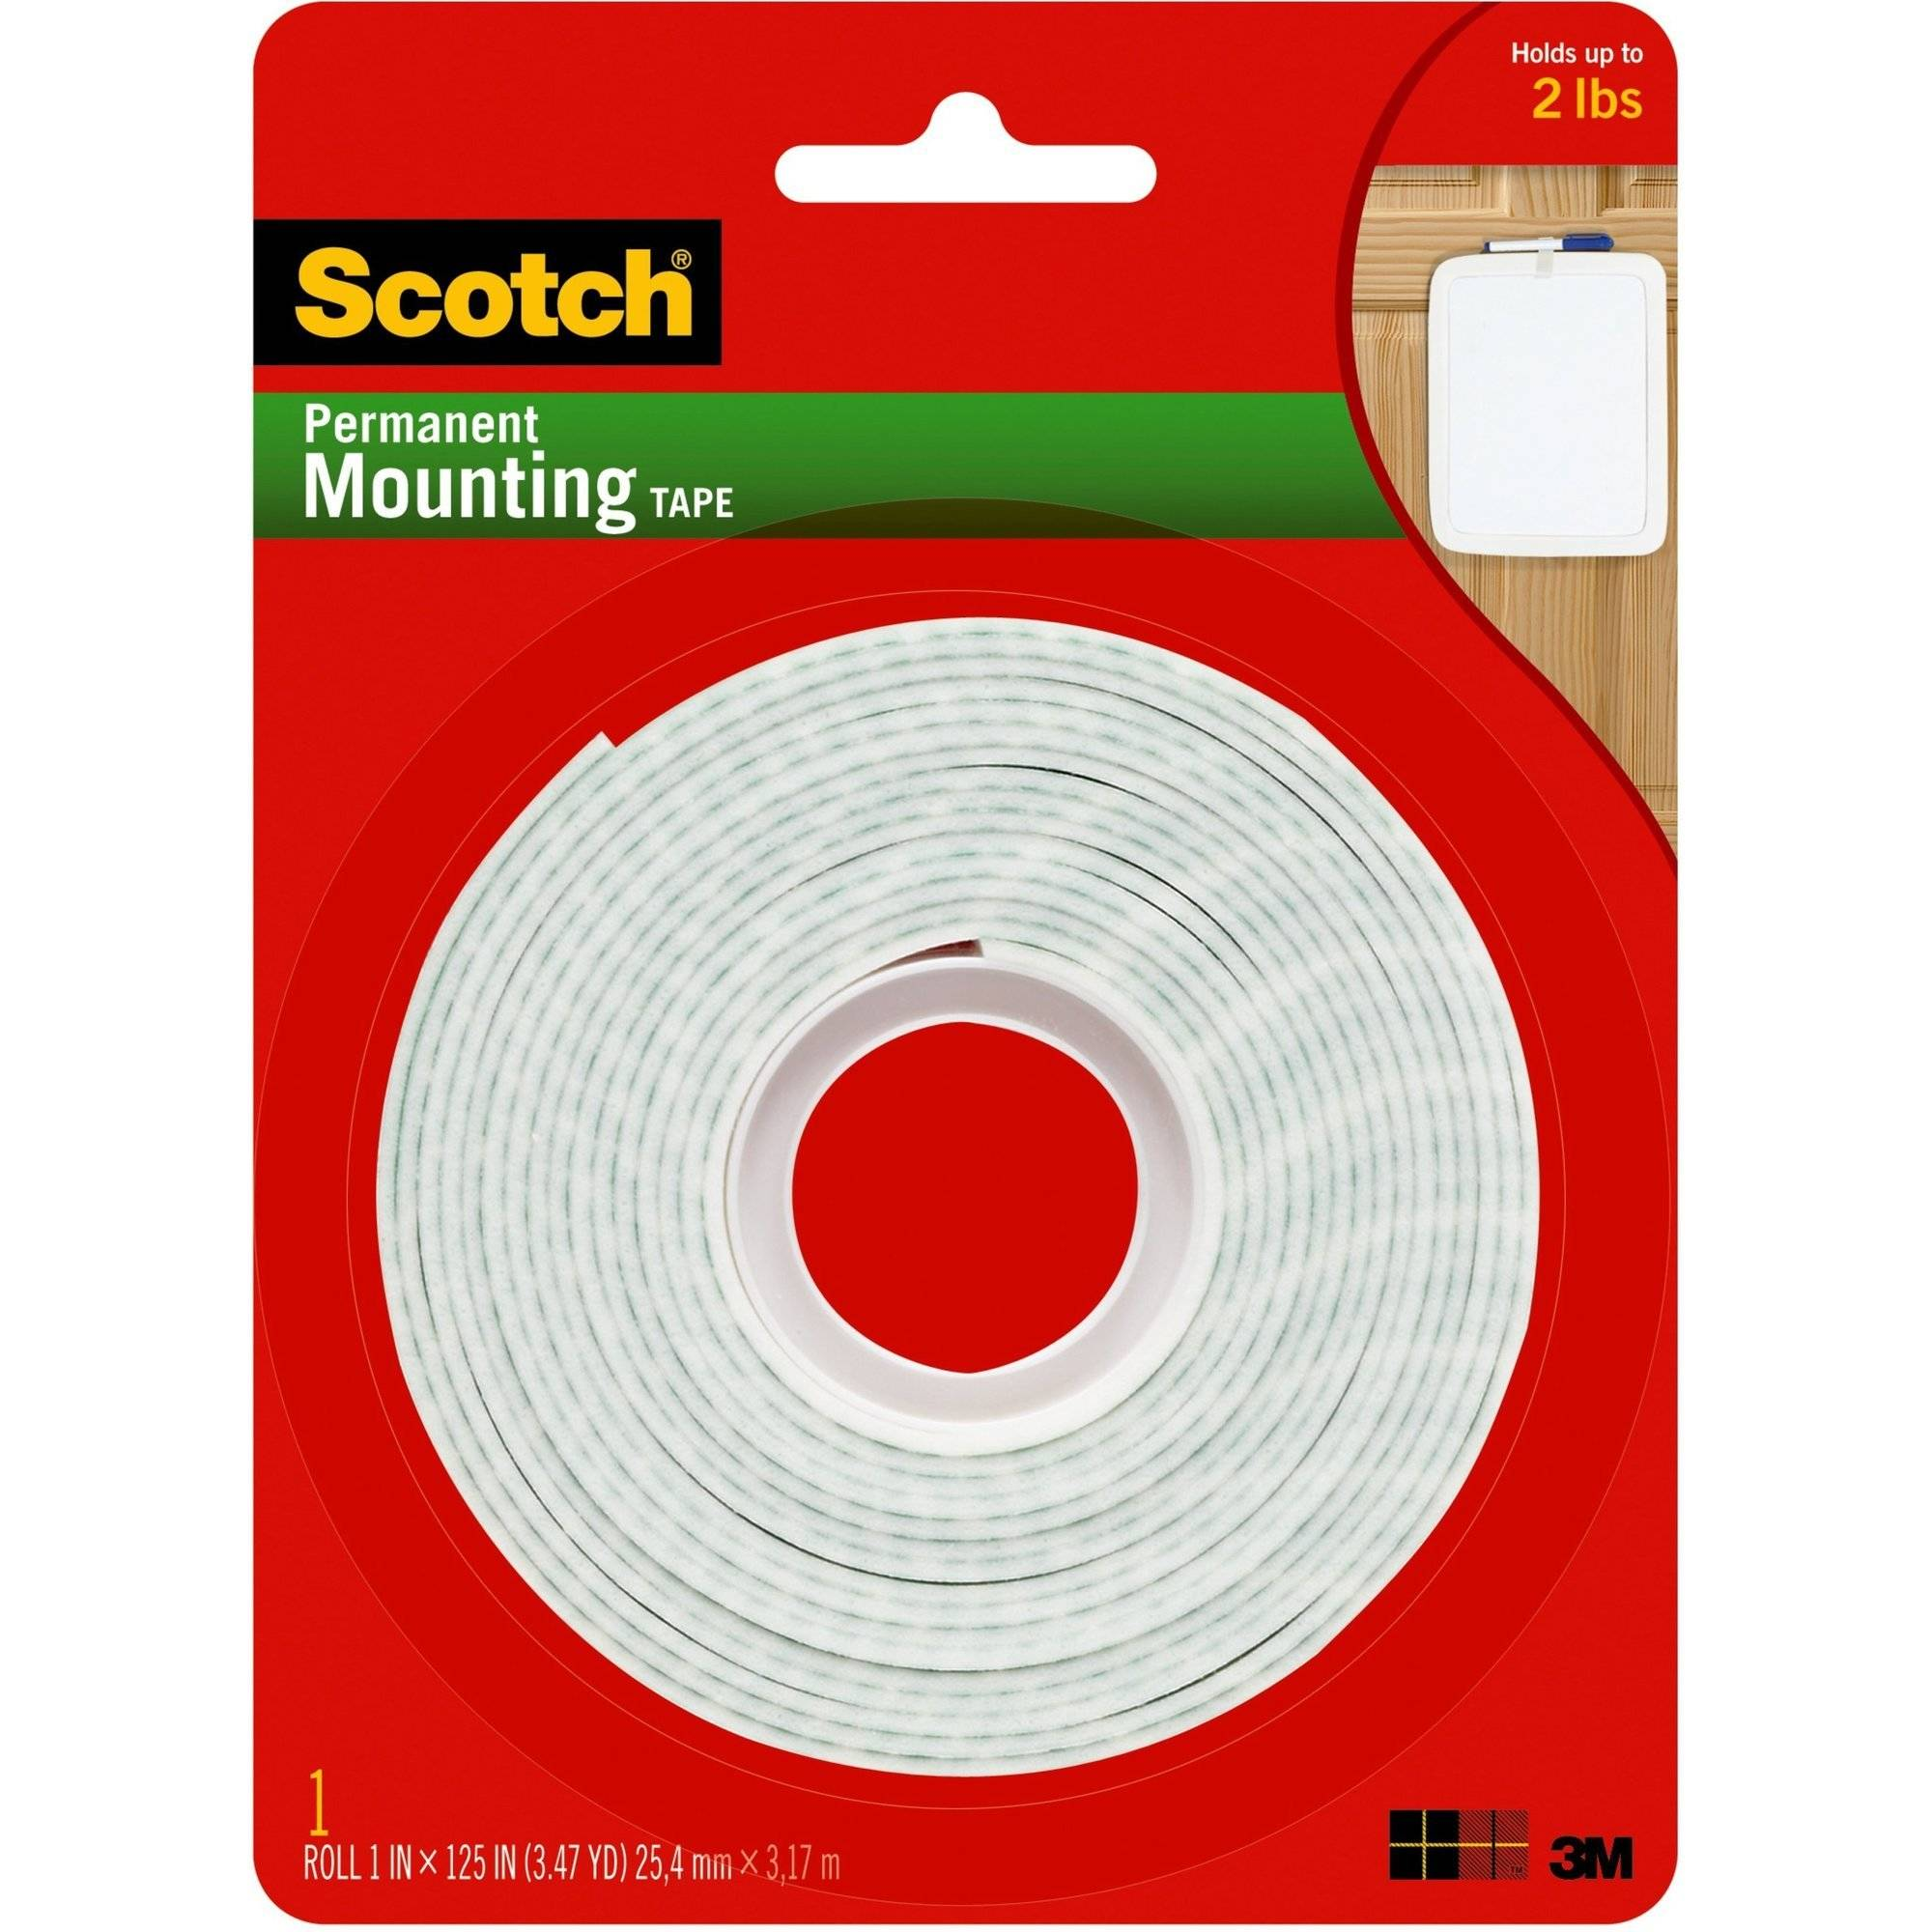 Scotch Permanet Mounting Tape, 1 in. x 125 in., White, 1 Roll/Pack